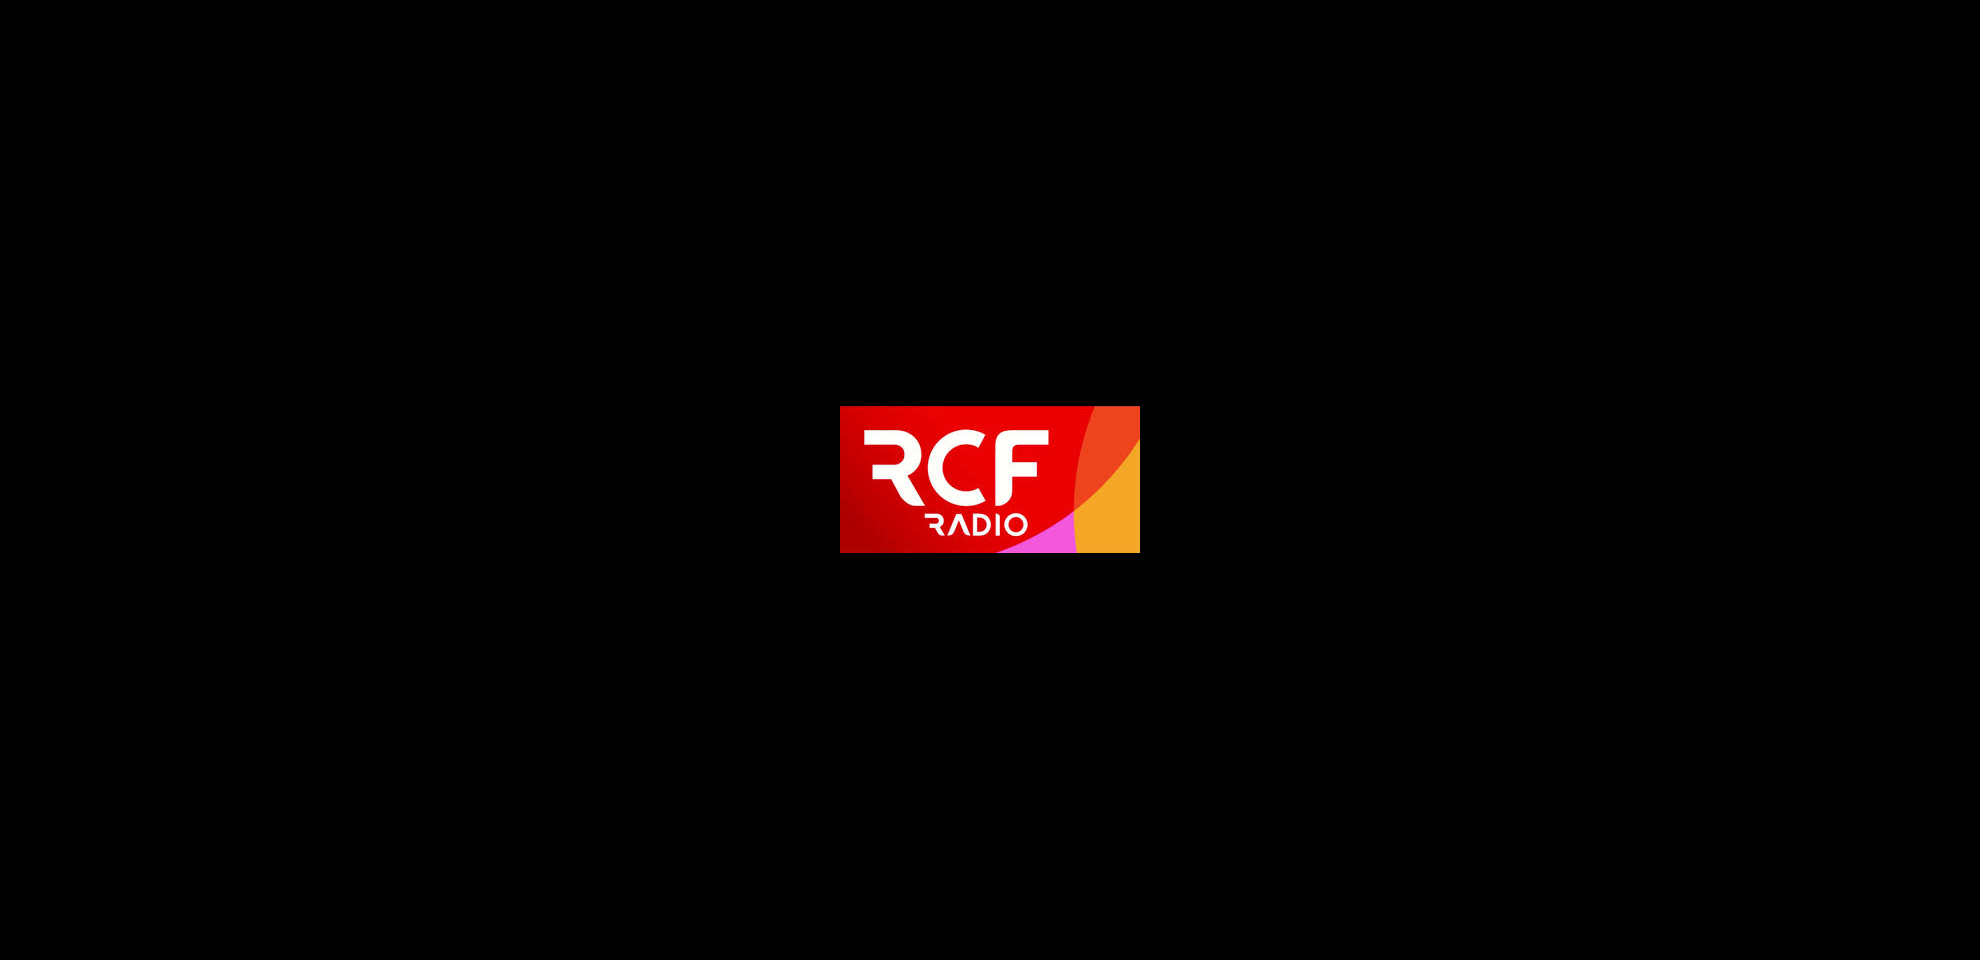 RE-ECOUTEZ L'EMISSION DE RCF